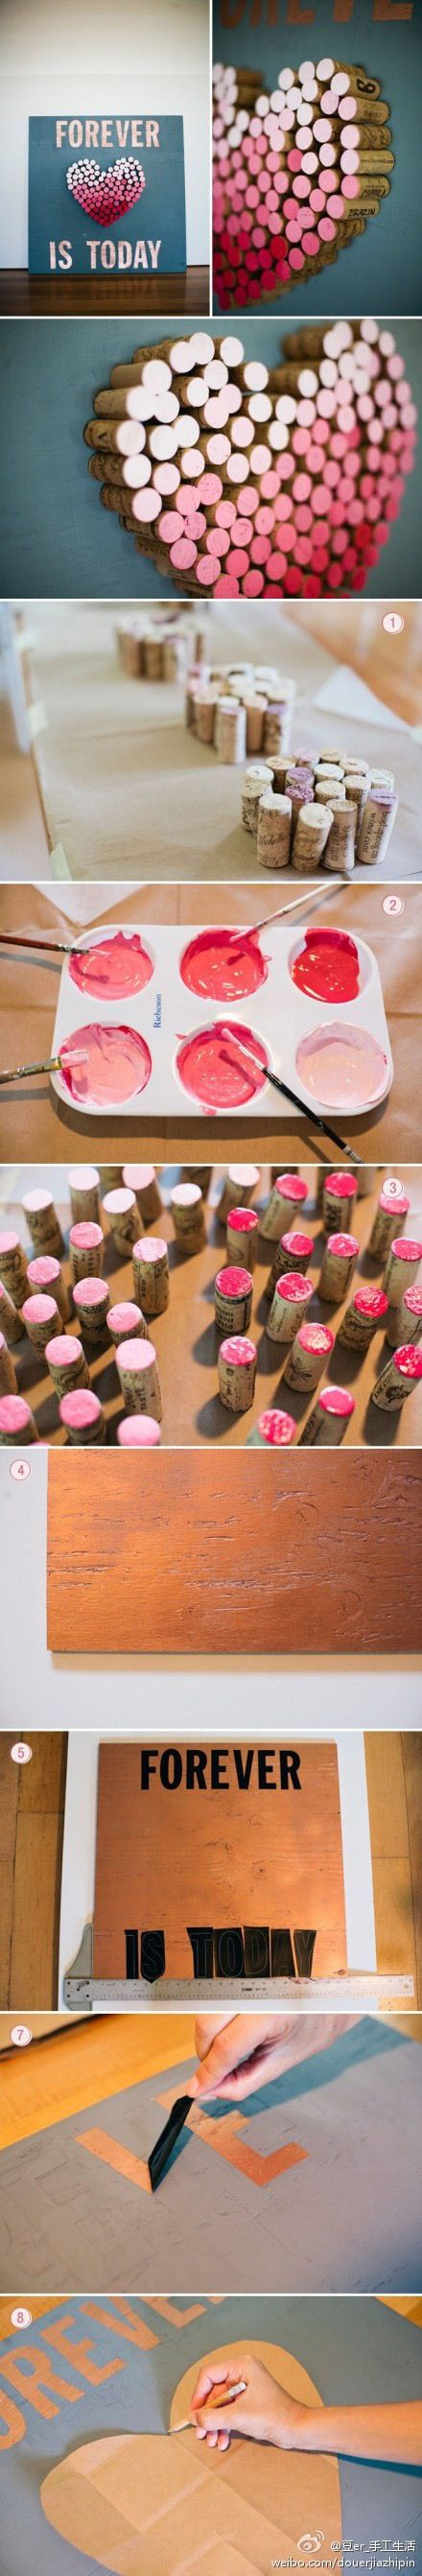 DIY room decorate with wood wine corks